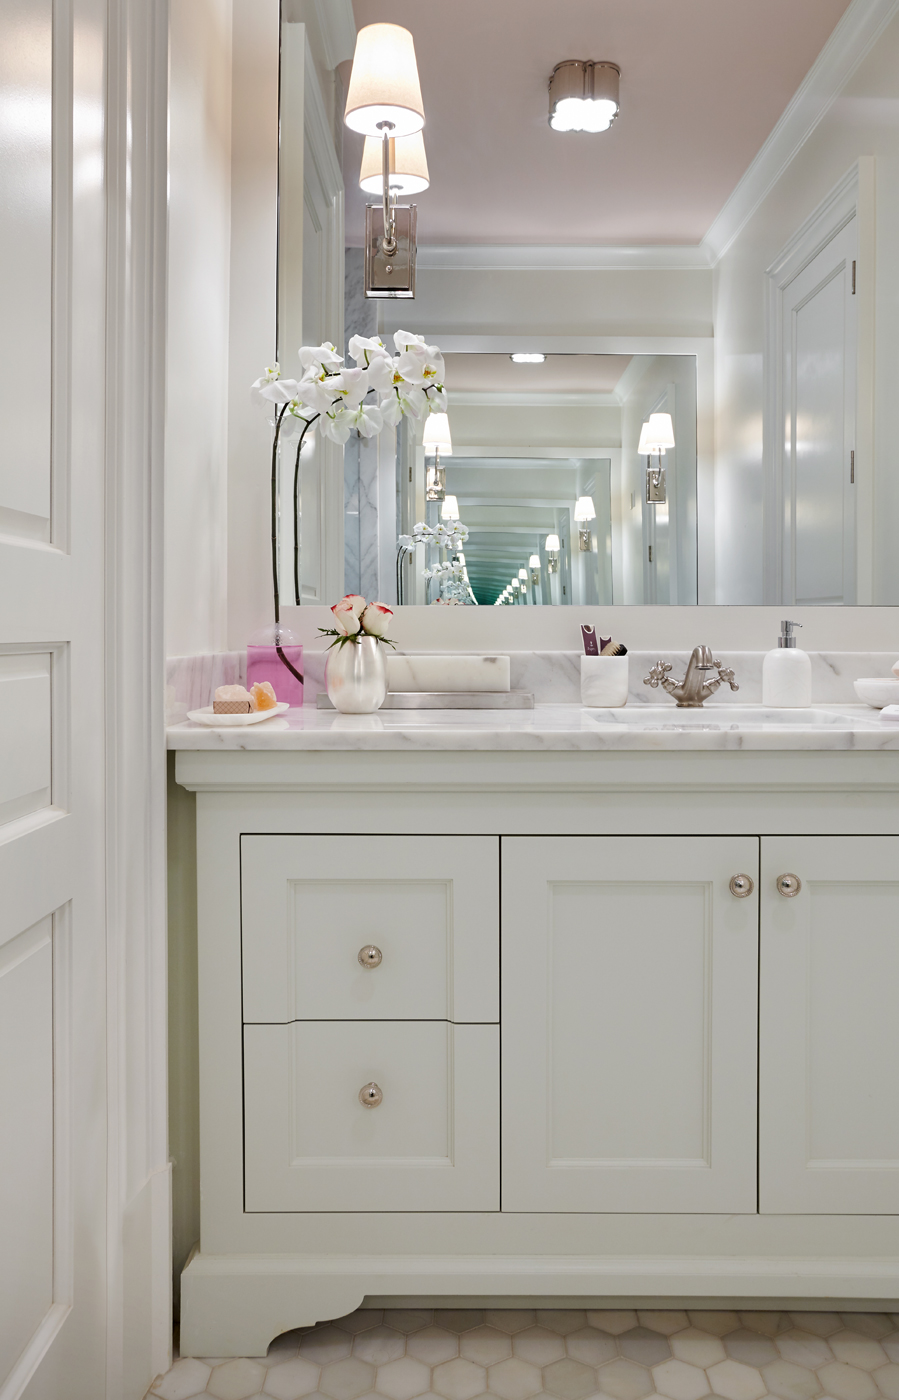 Clean-lined yet classic white bathroom vanity paired with pale pink ceiling color in this Atlanta show house | Savage Interior Design